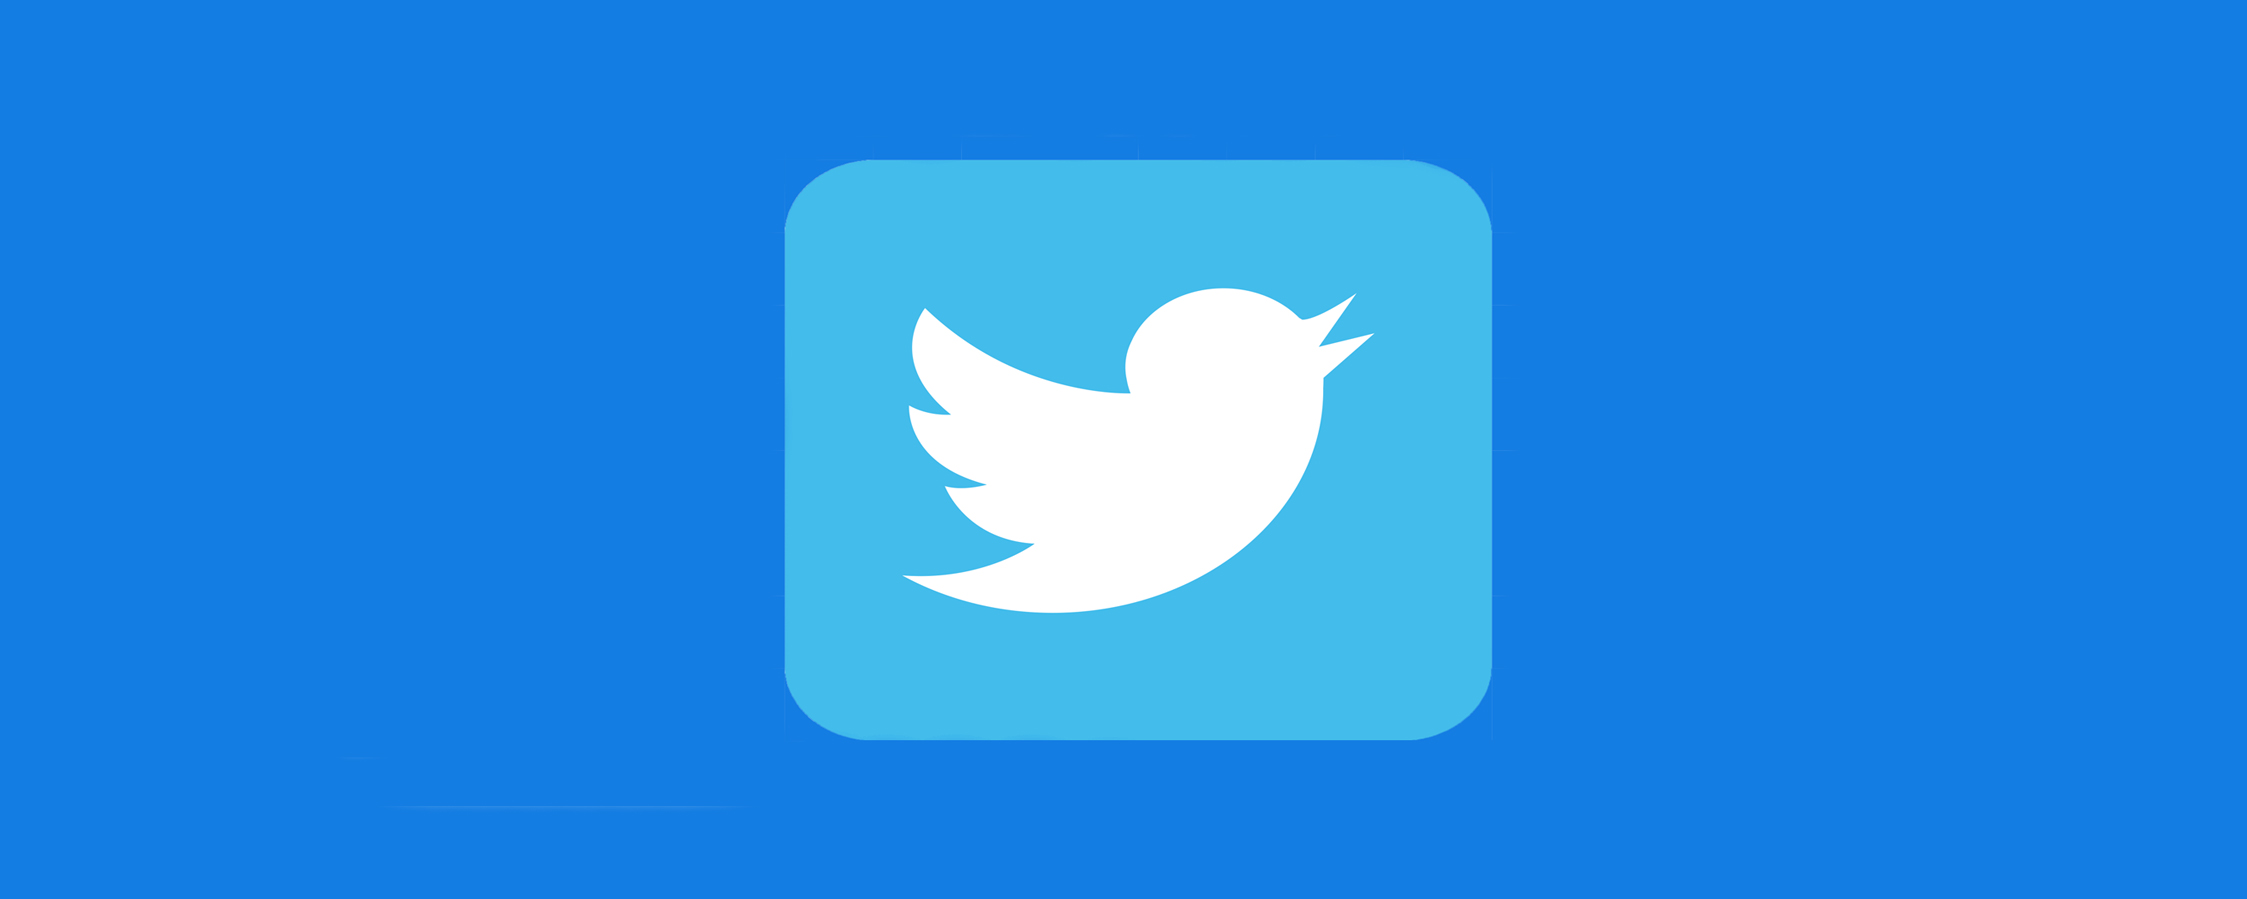 Twitter Changes Political Content Ad Rules